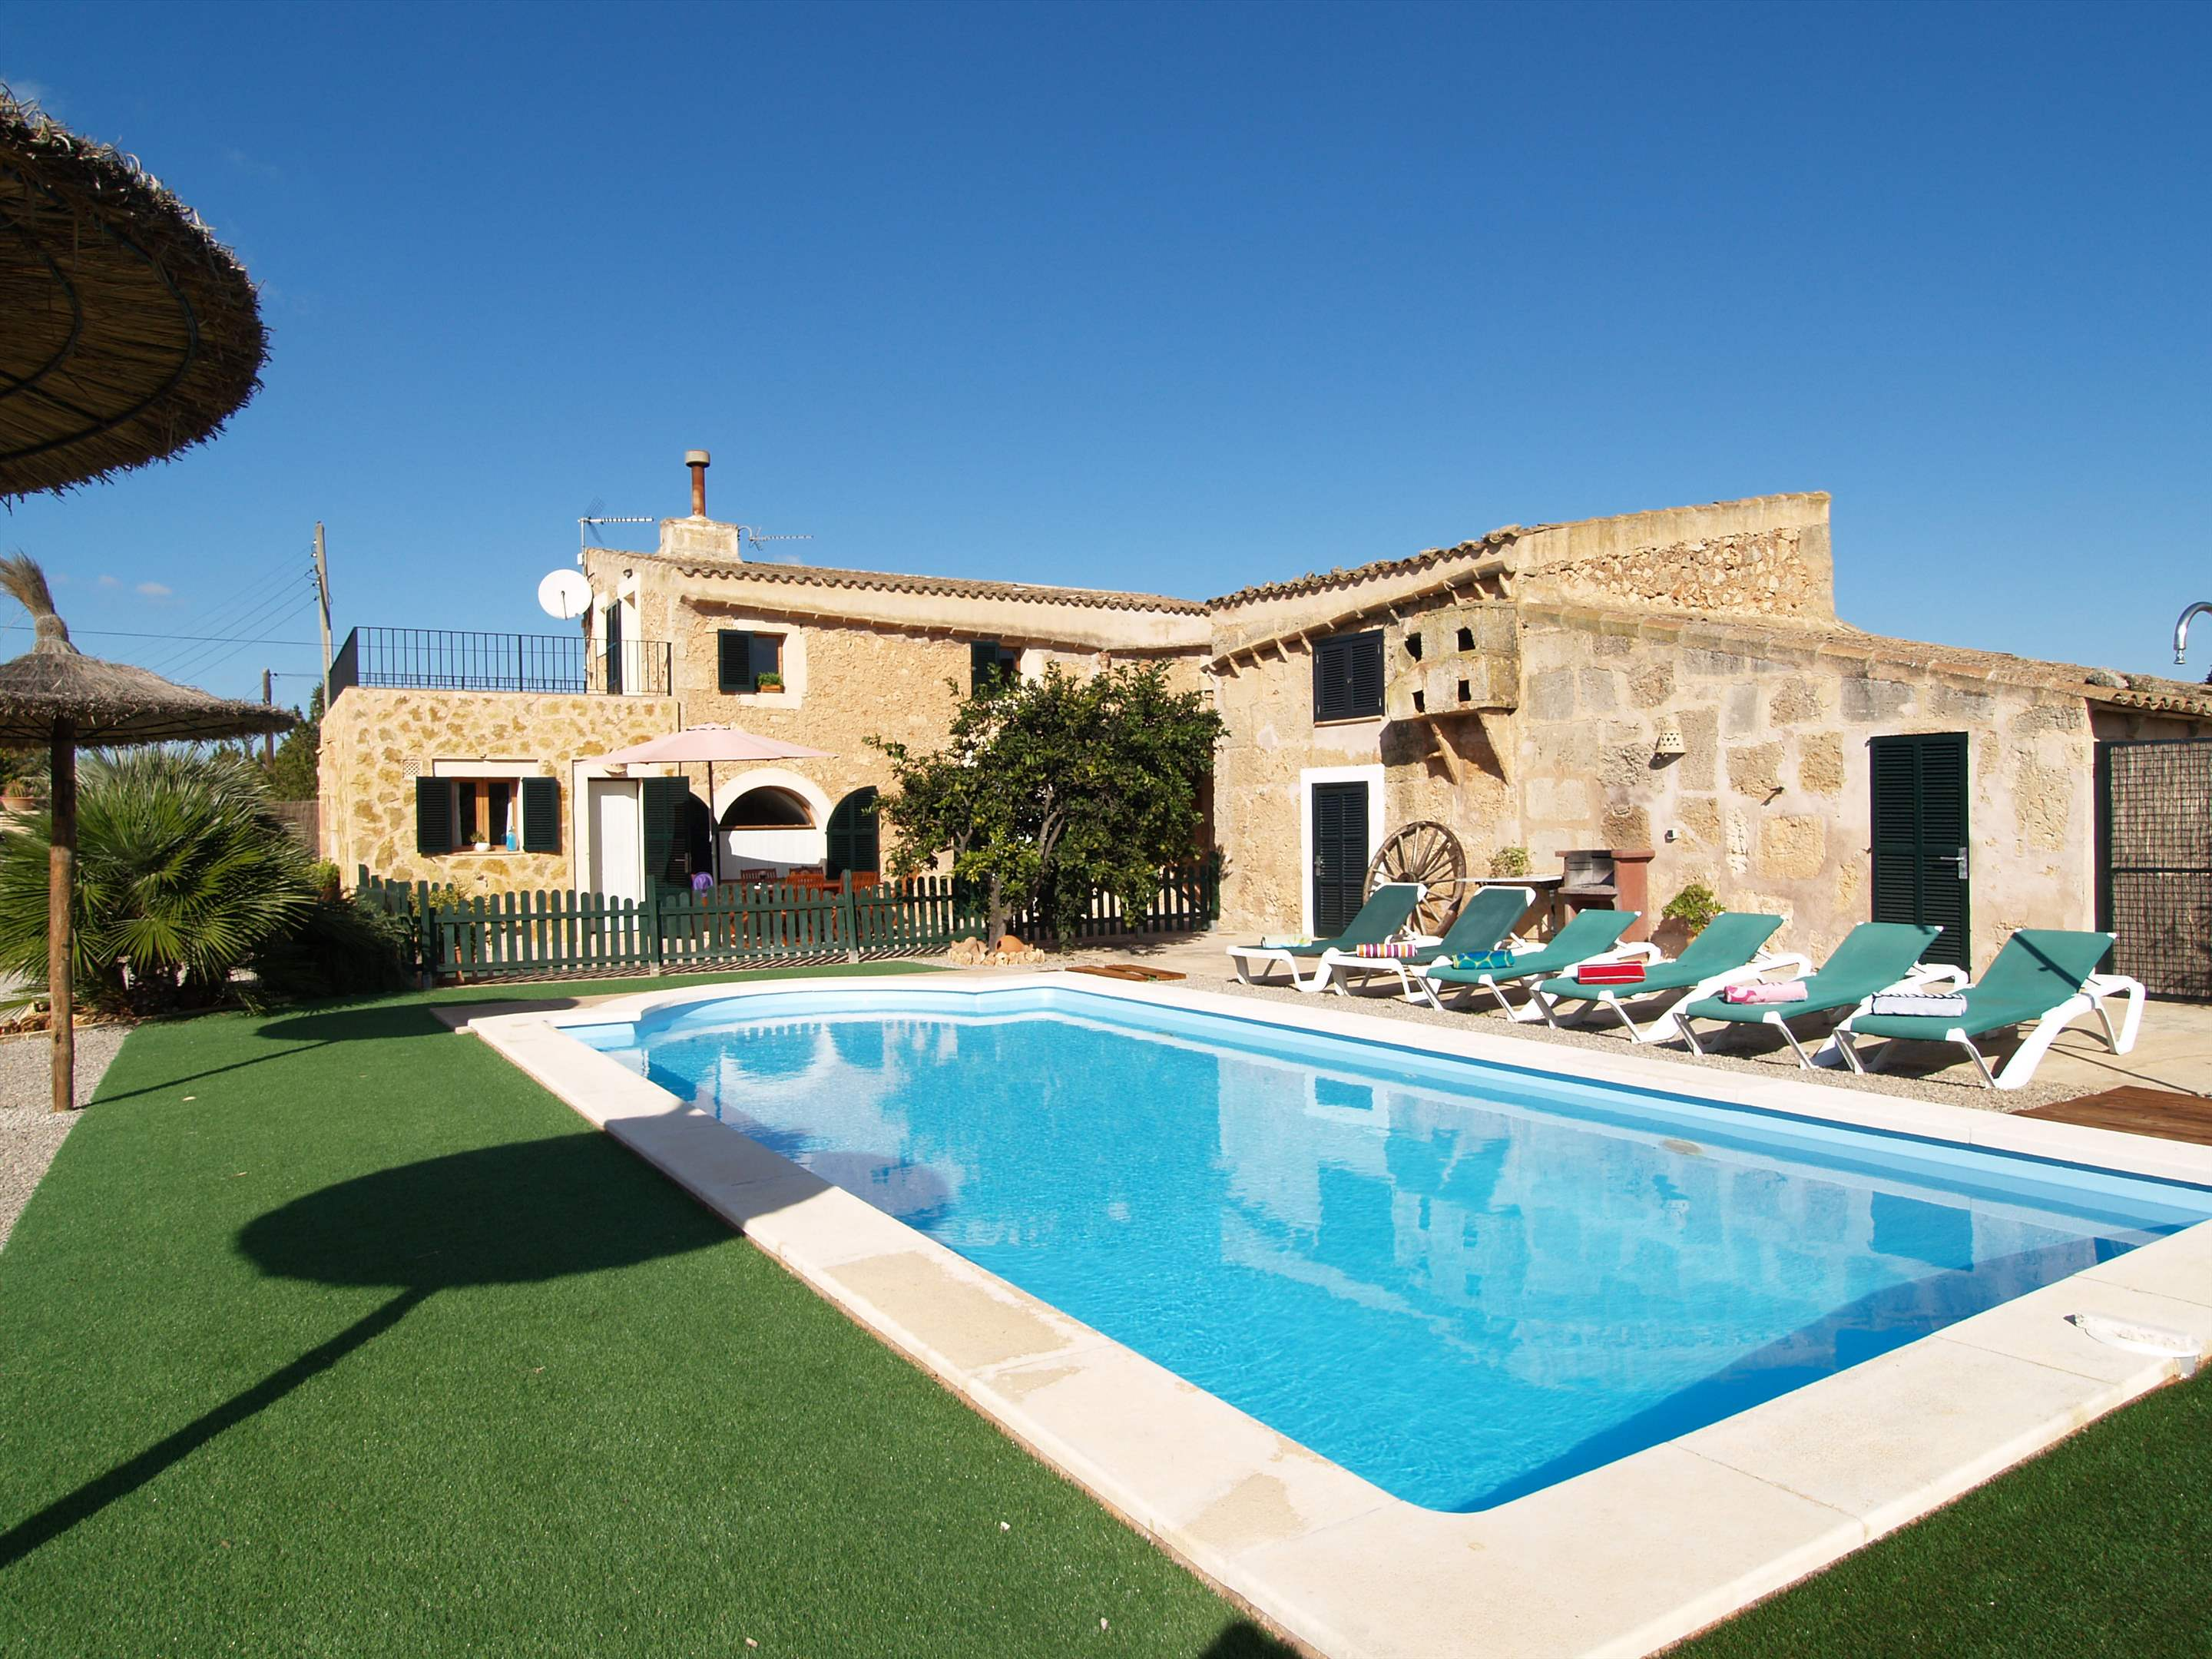 Son Rengo, 3 bedroom villa in Campos & Sa Rapita , Majorca Photo #7